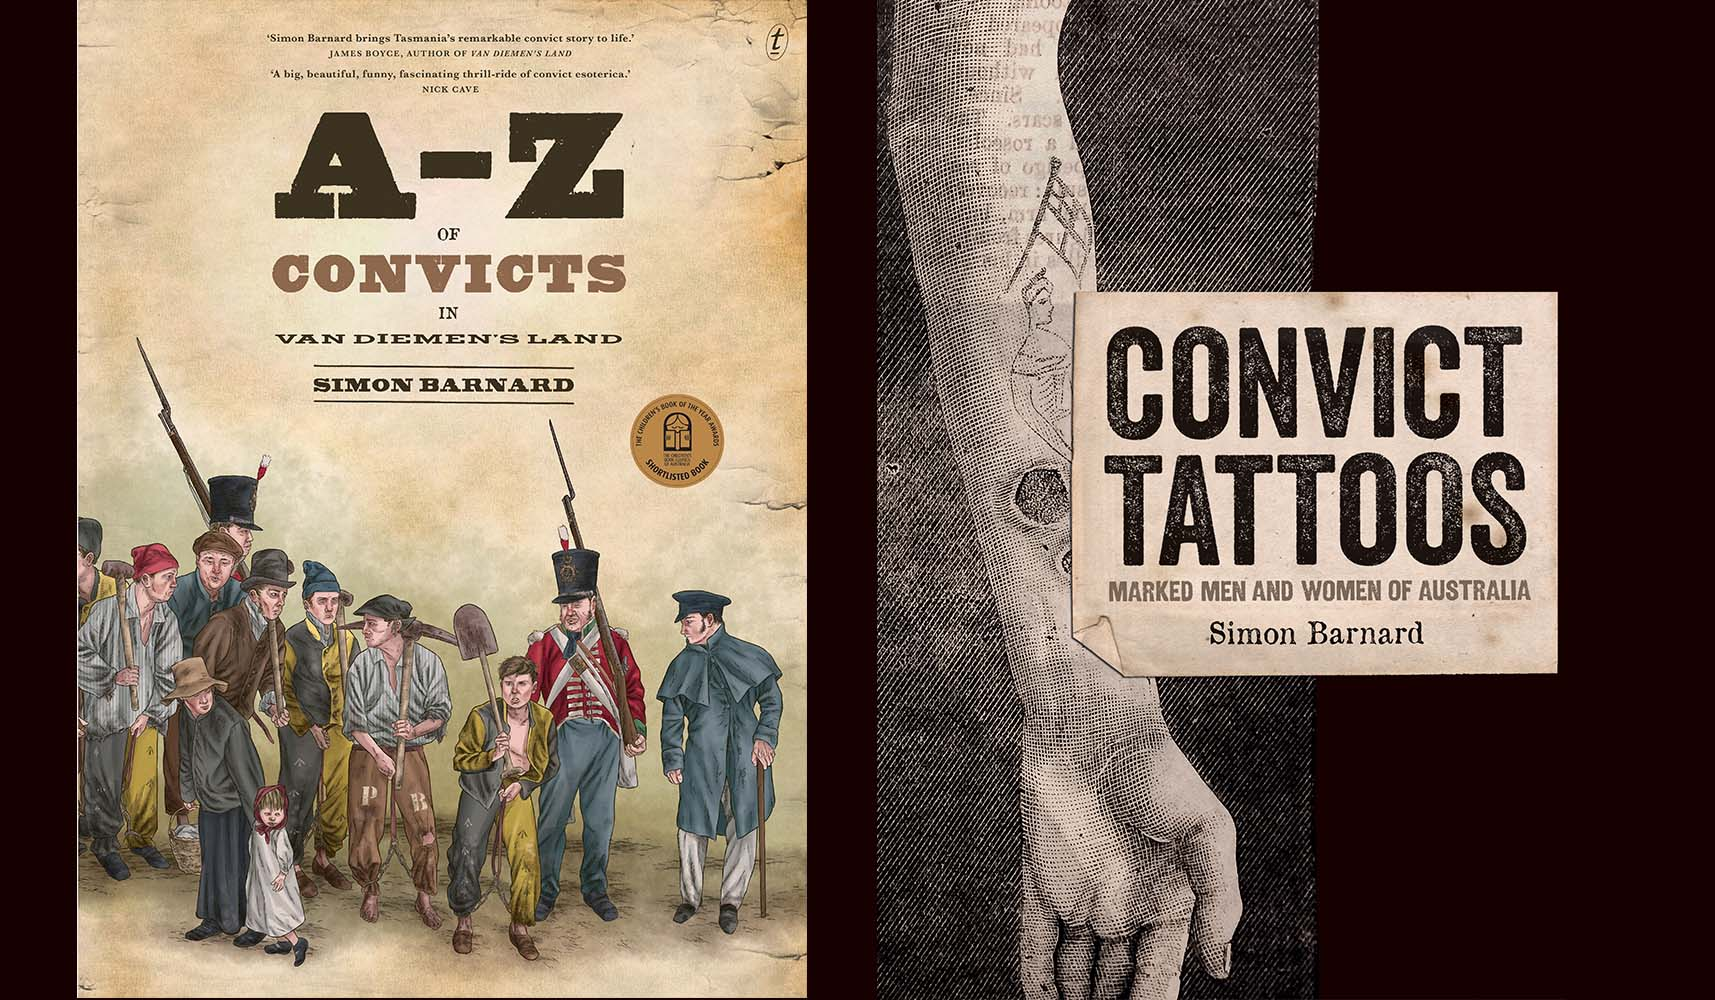 Book Covers for A-Z of Convicts in Van Diemen's Land and Convict Tattoos